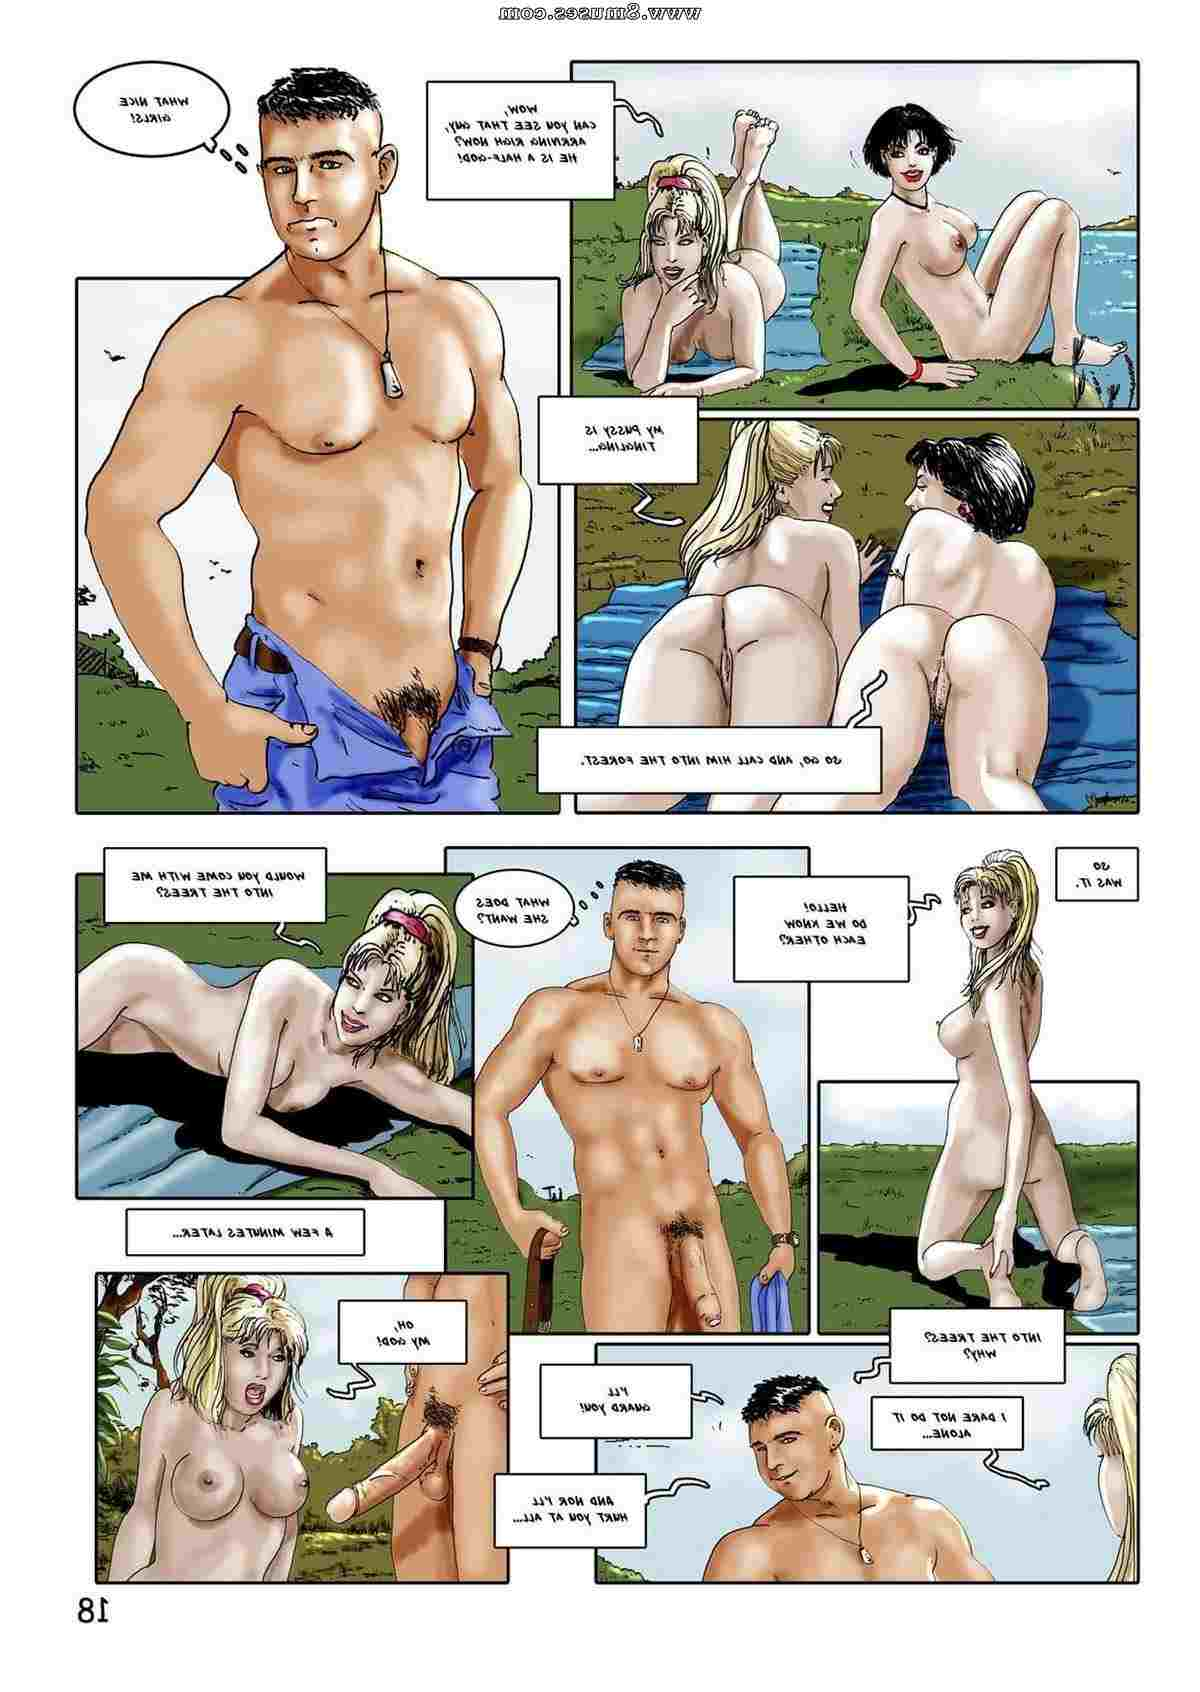 AllPornComics_com-Comics/Danube-Girls Danube_Girls__8muses_-_Sex_and_Porn_Comics_18.jpg